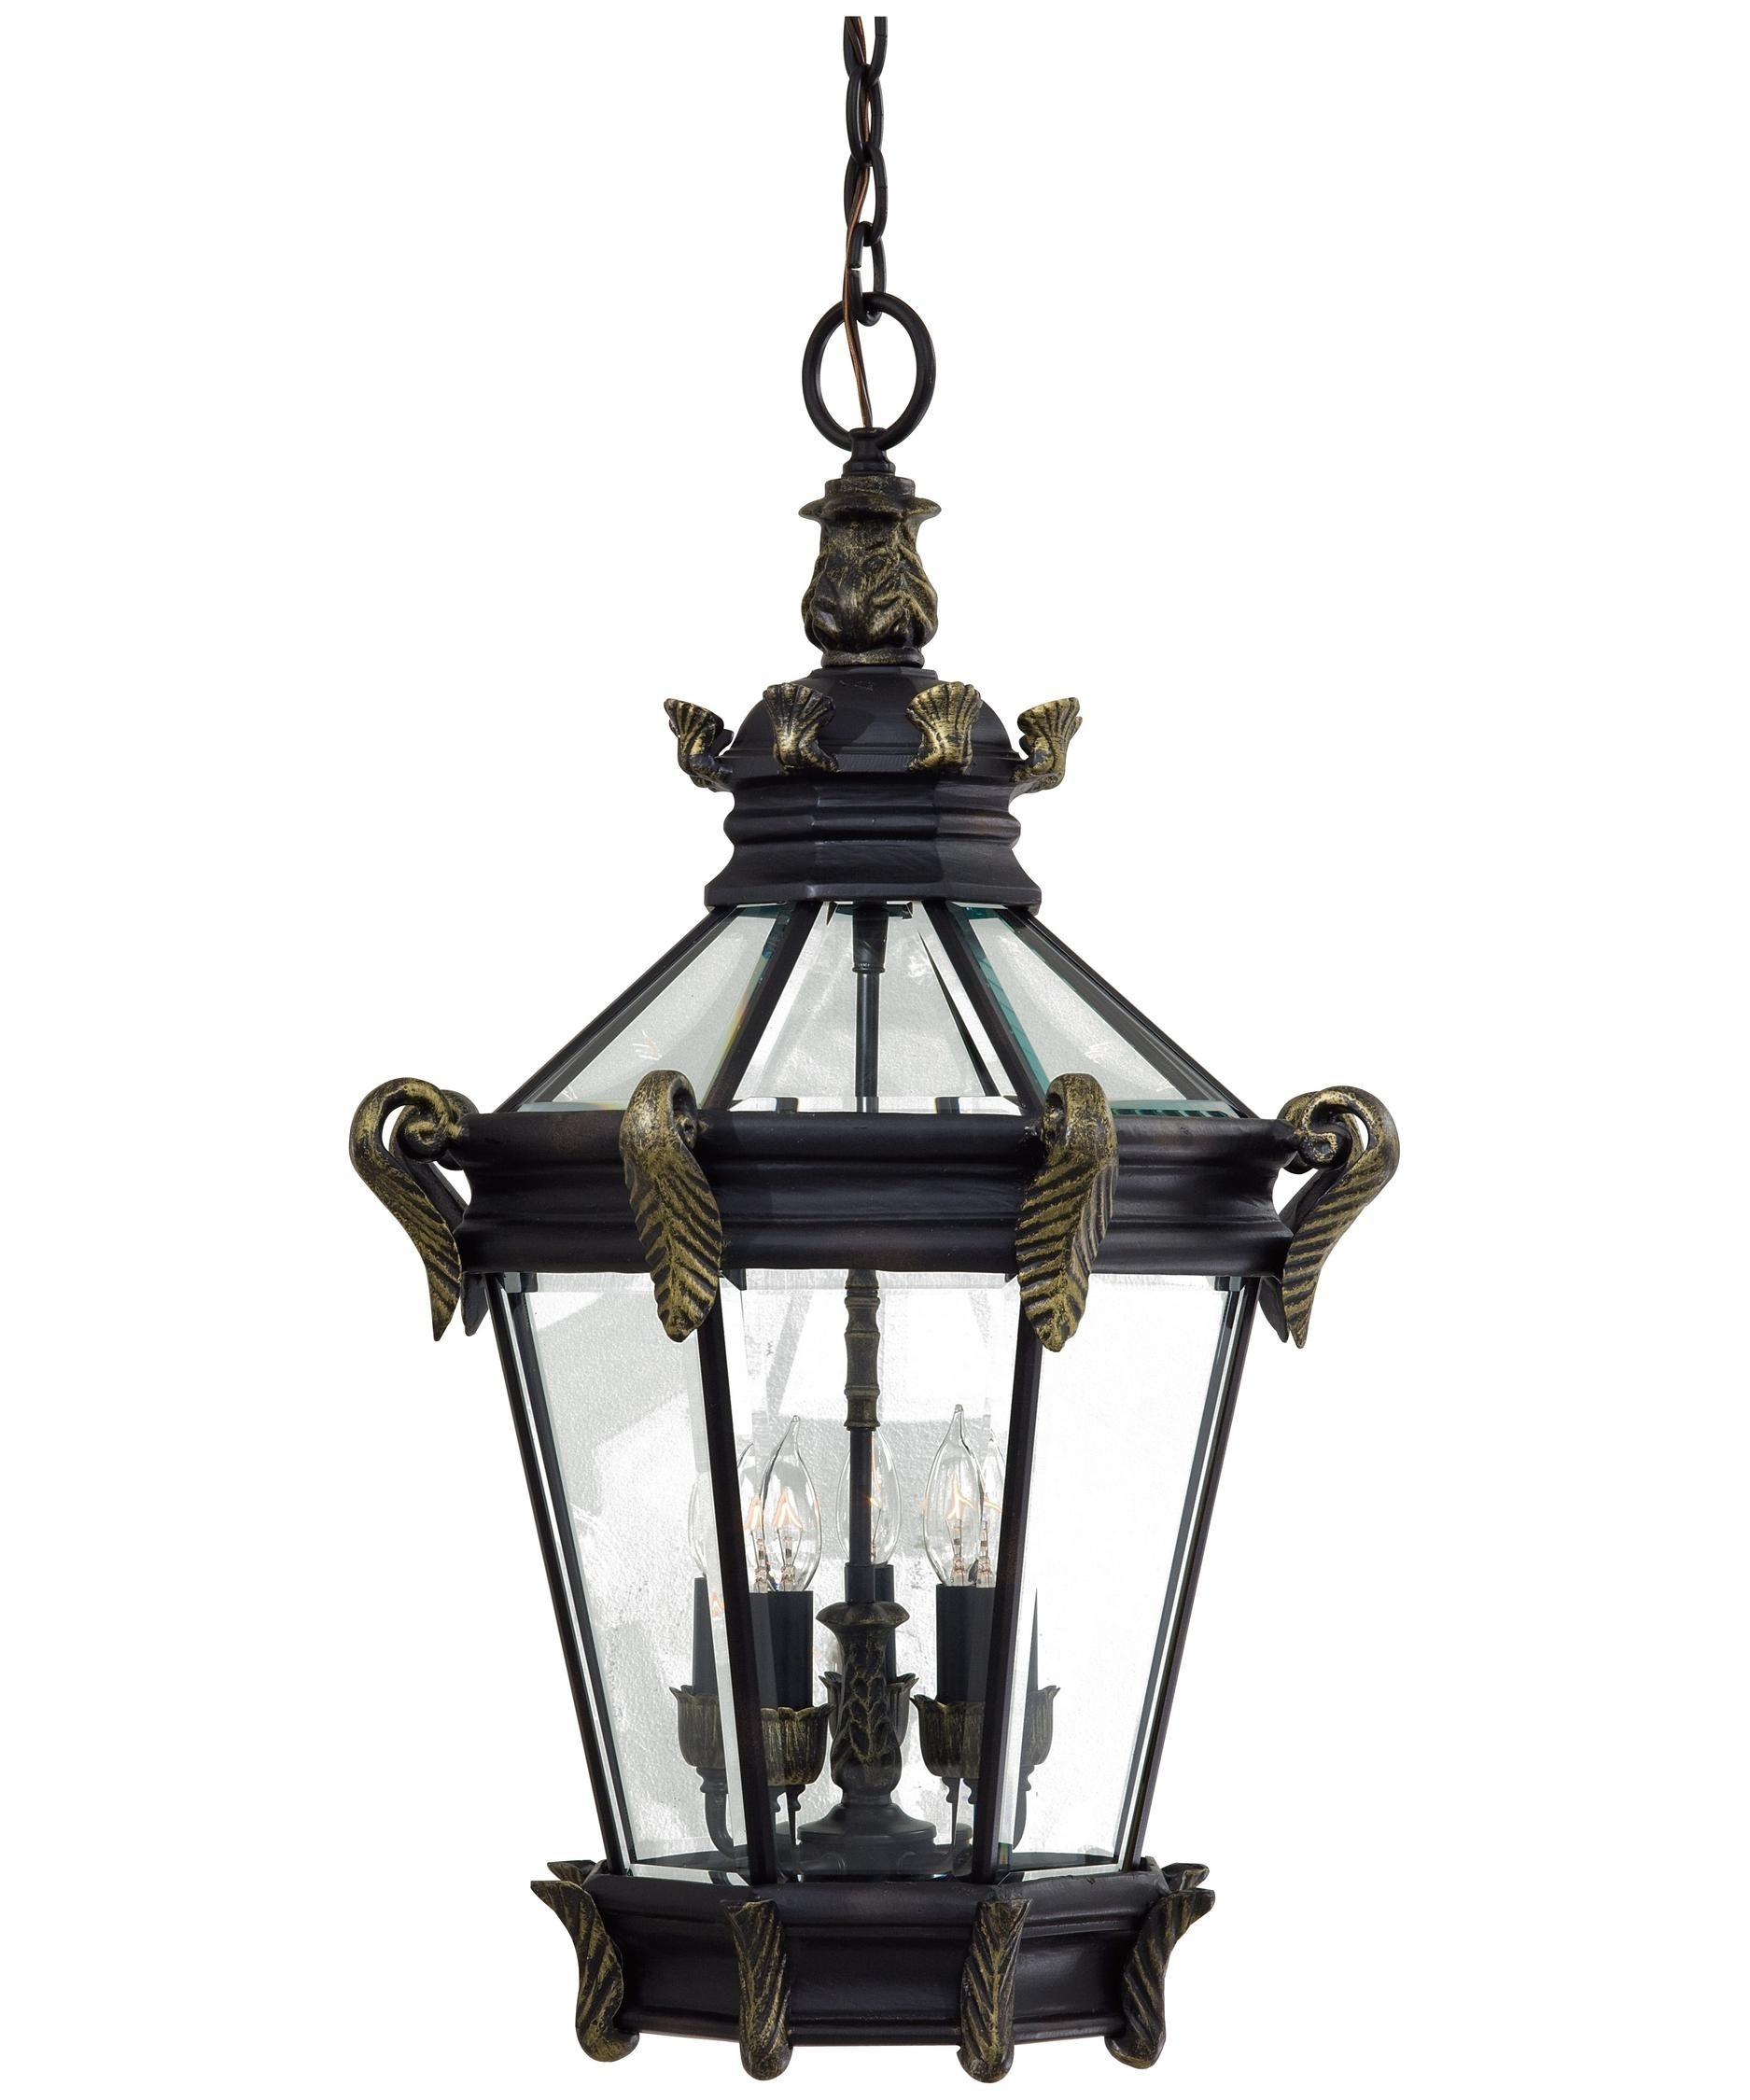 Minka Lavery 8934 Stratford Hall 19 Inch Wide 5 Light Outdoor Pertaining To Outdoor Hanging Patio Lanterns (View 8 of 15)